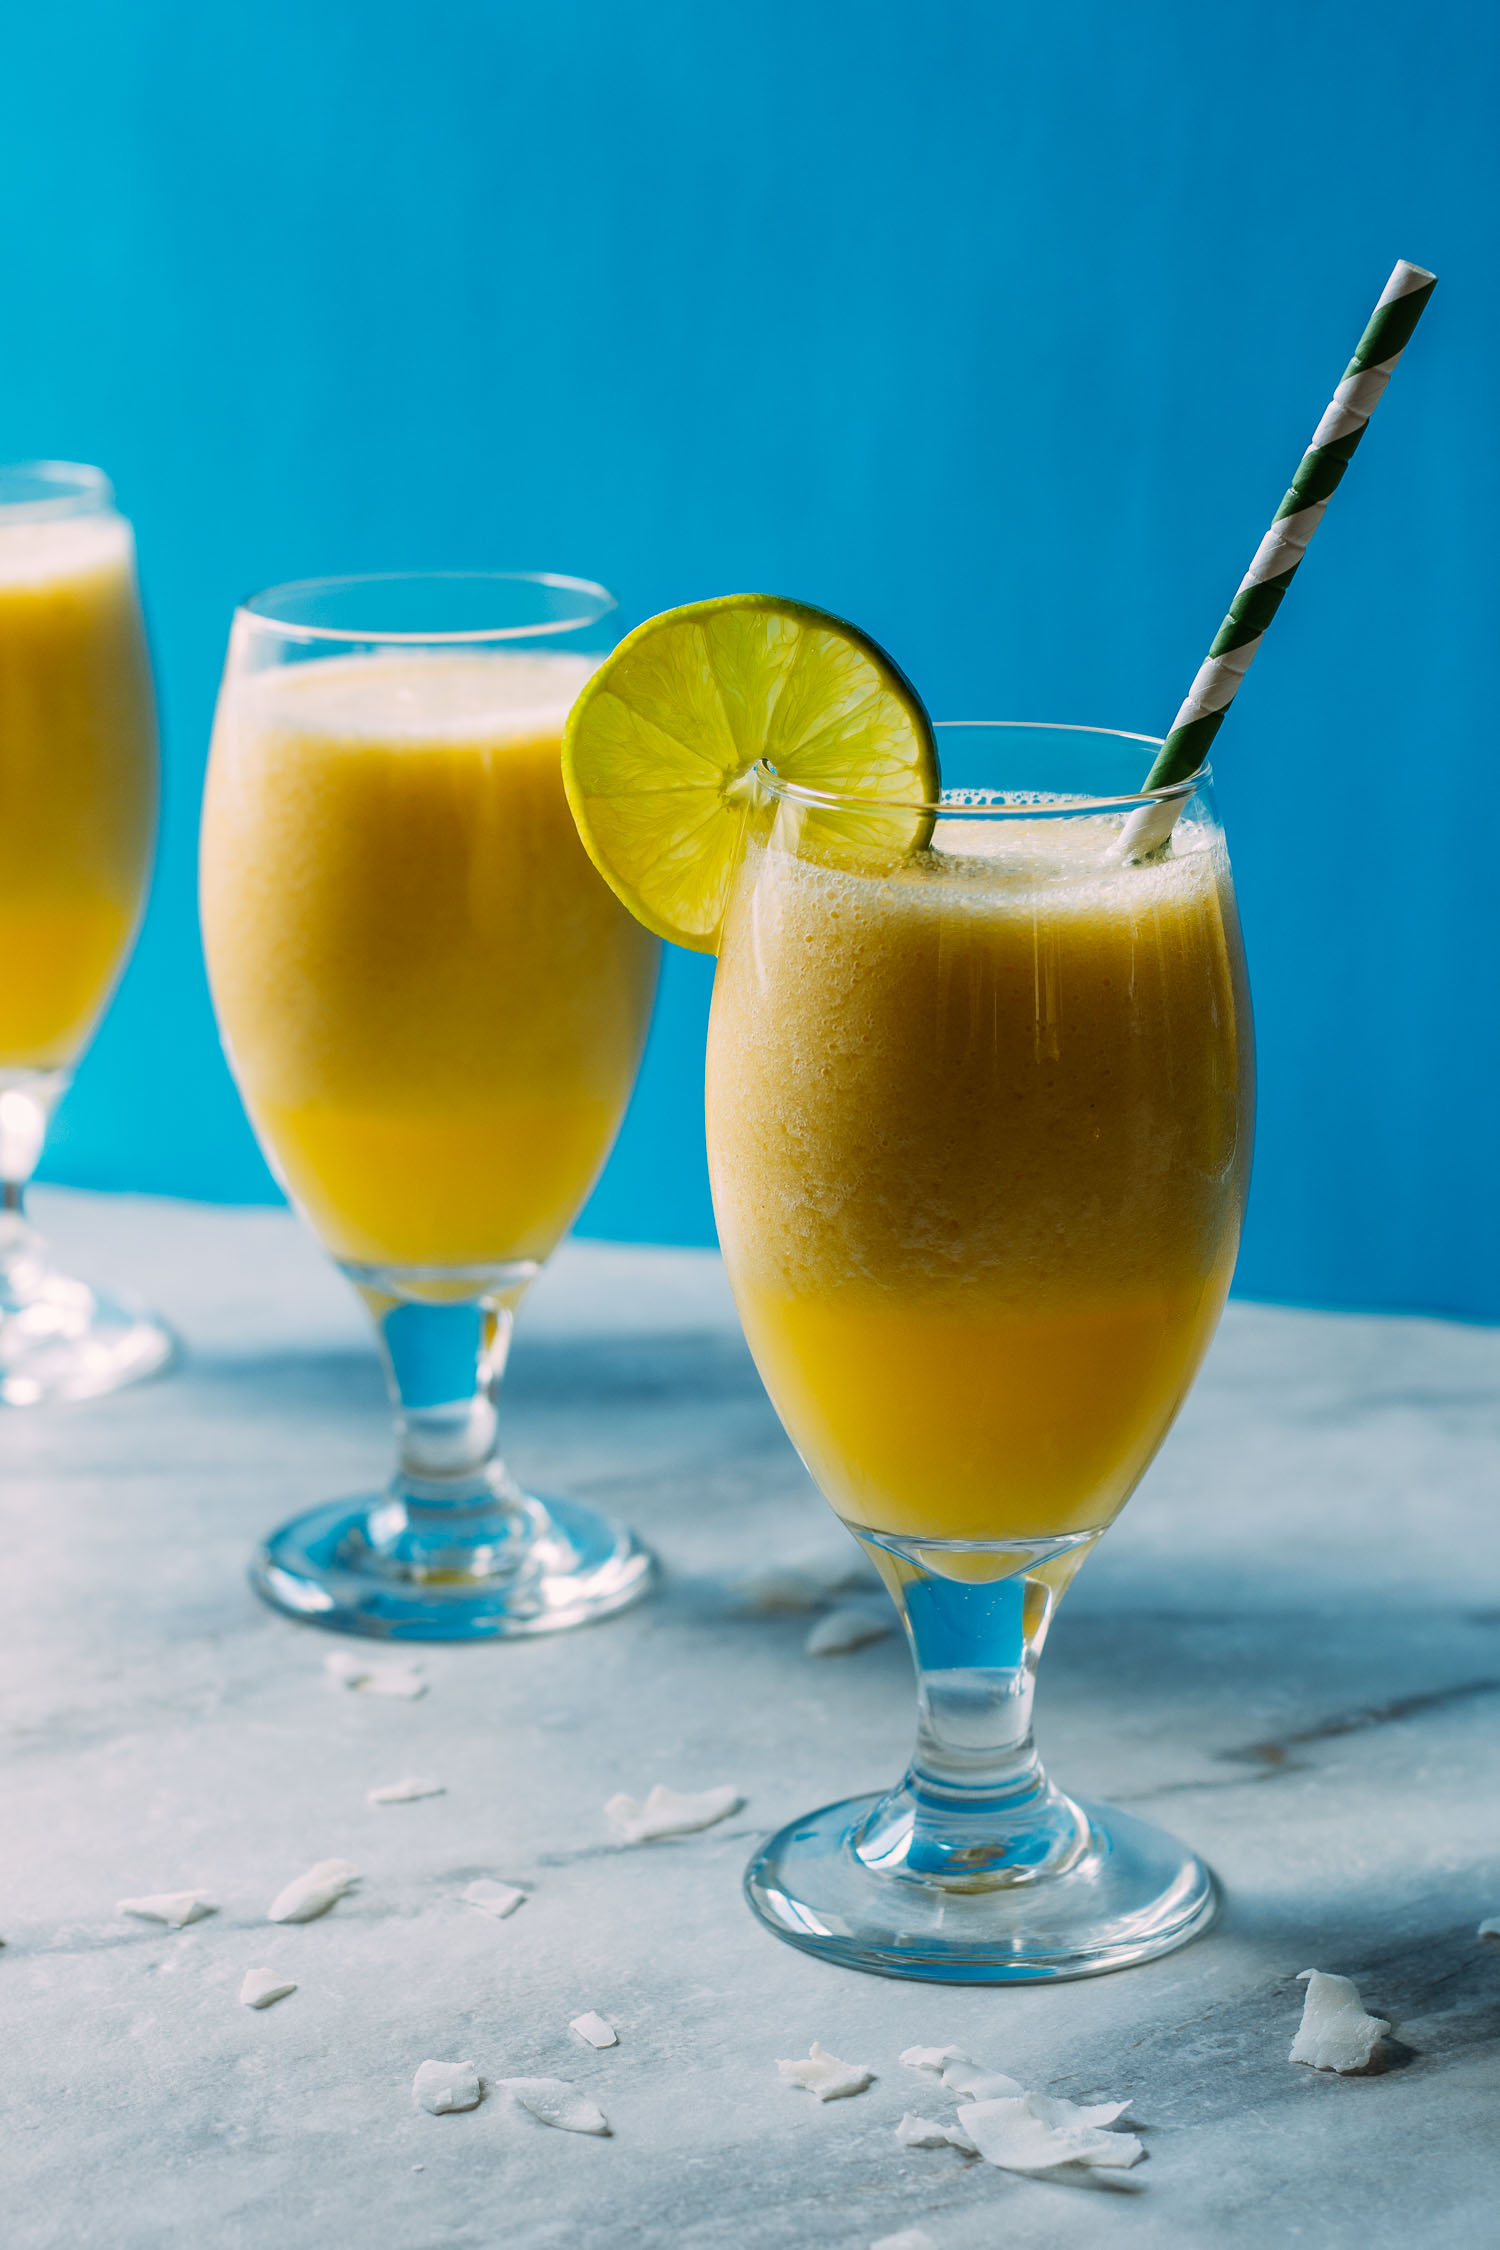 Refreshingly Lite Pina Colada Mango Smoothie #smoothie #mango #pina colada #pineapple #recipe